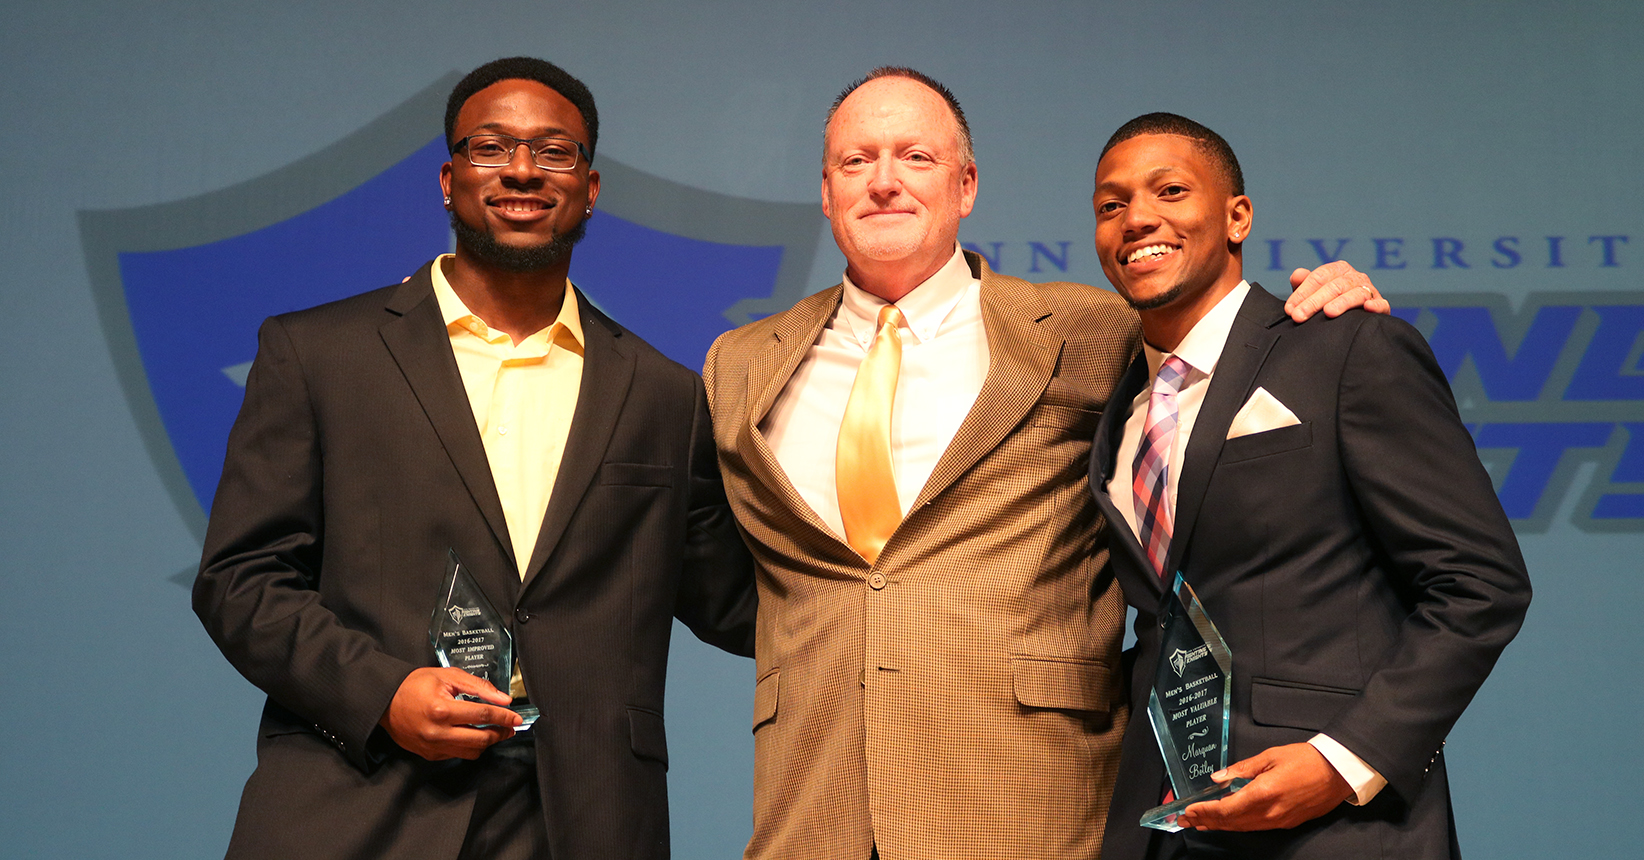 Lynn Athletics Recognizes Student-Athletes at Sixth Annual Awards Show